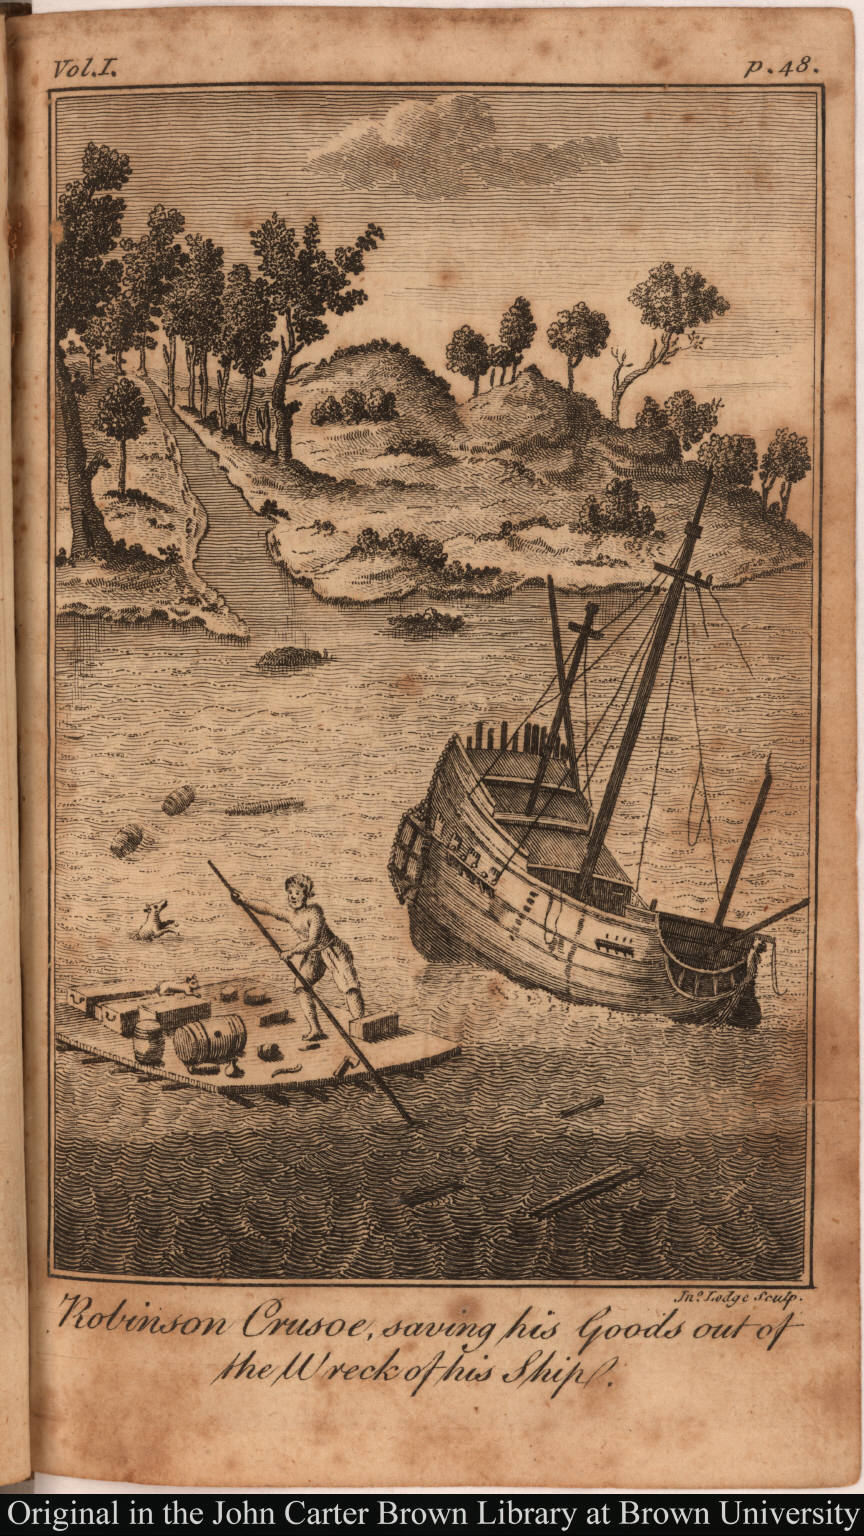 Robinson Crusoe, Saving his Goods out of the Wreck of his Ship.